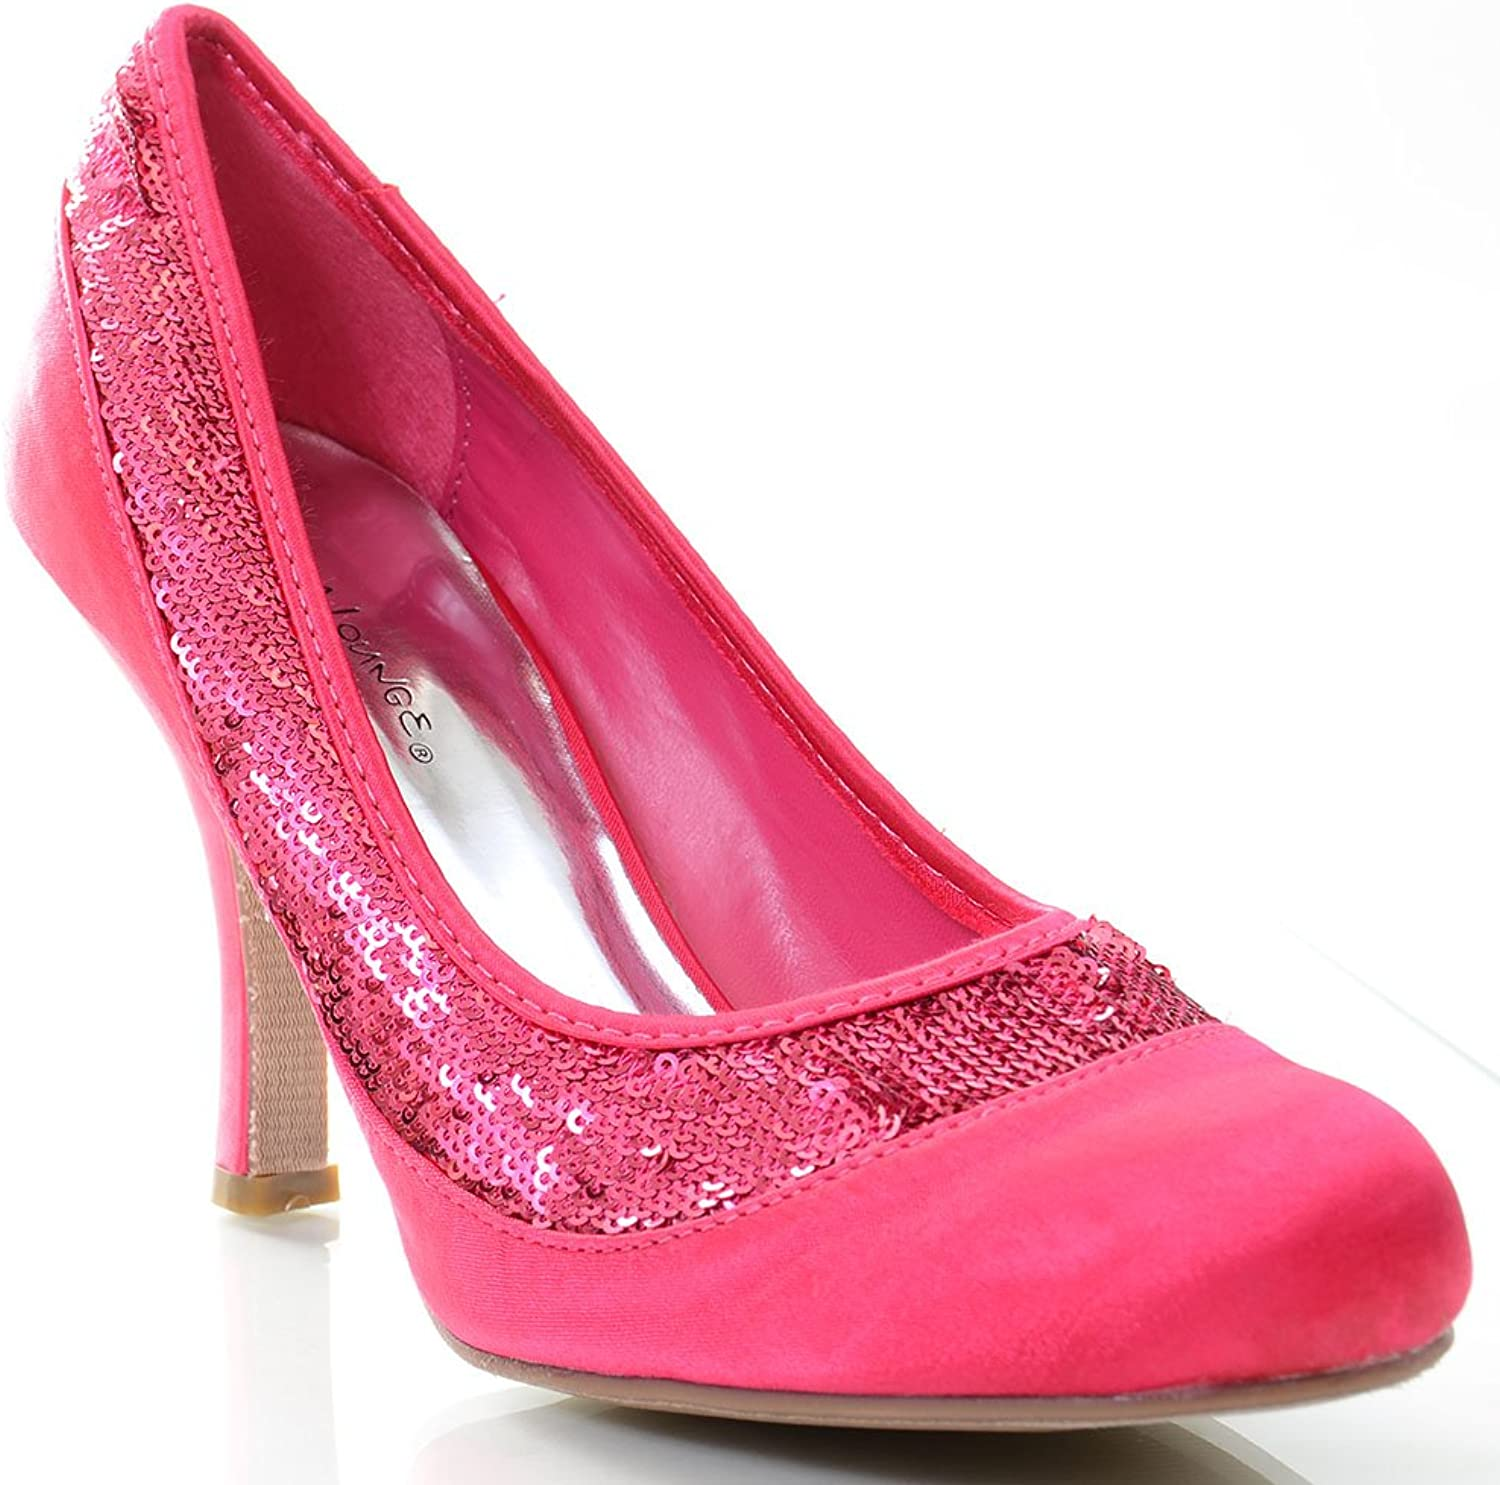 Fourever Funky Sequin Fuchsia Satin Low Heel Pumps Women's